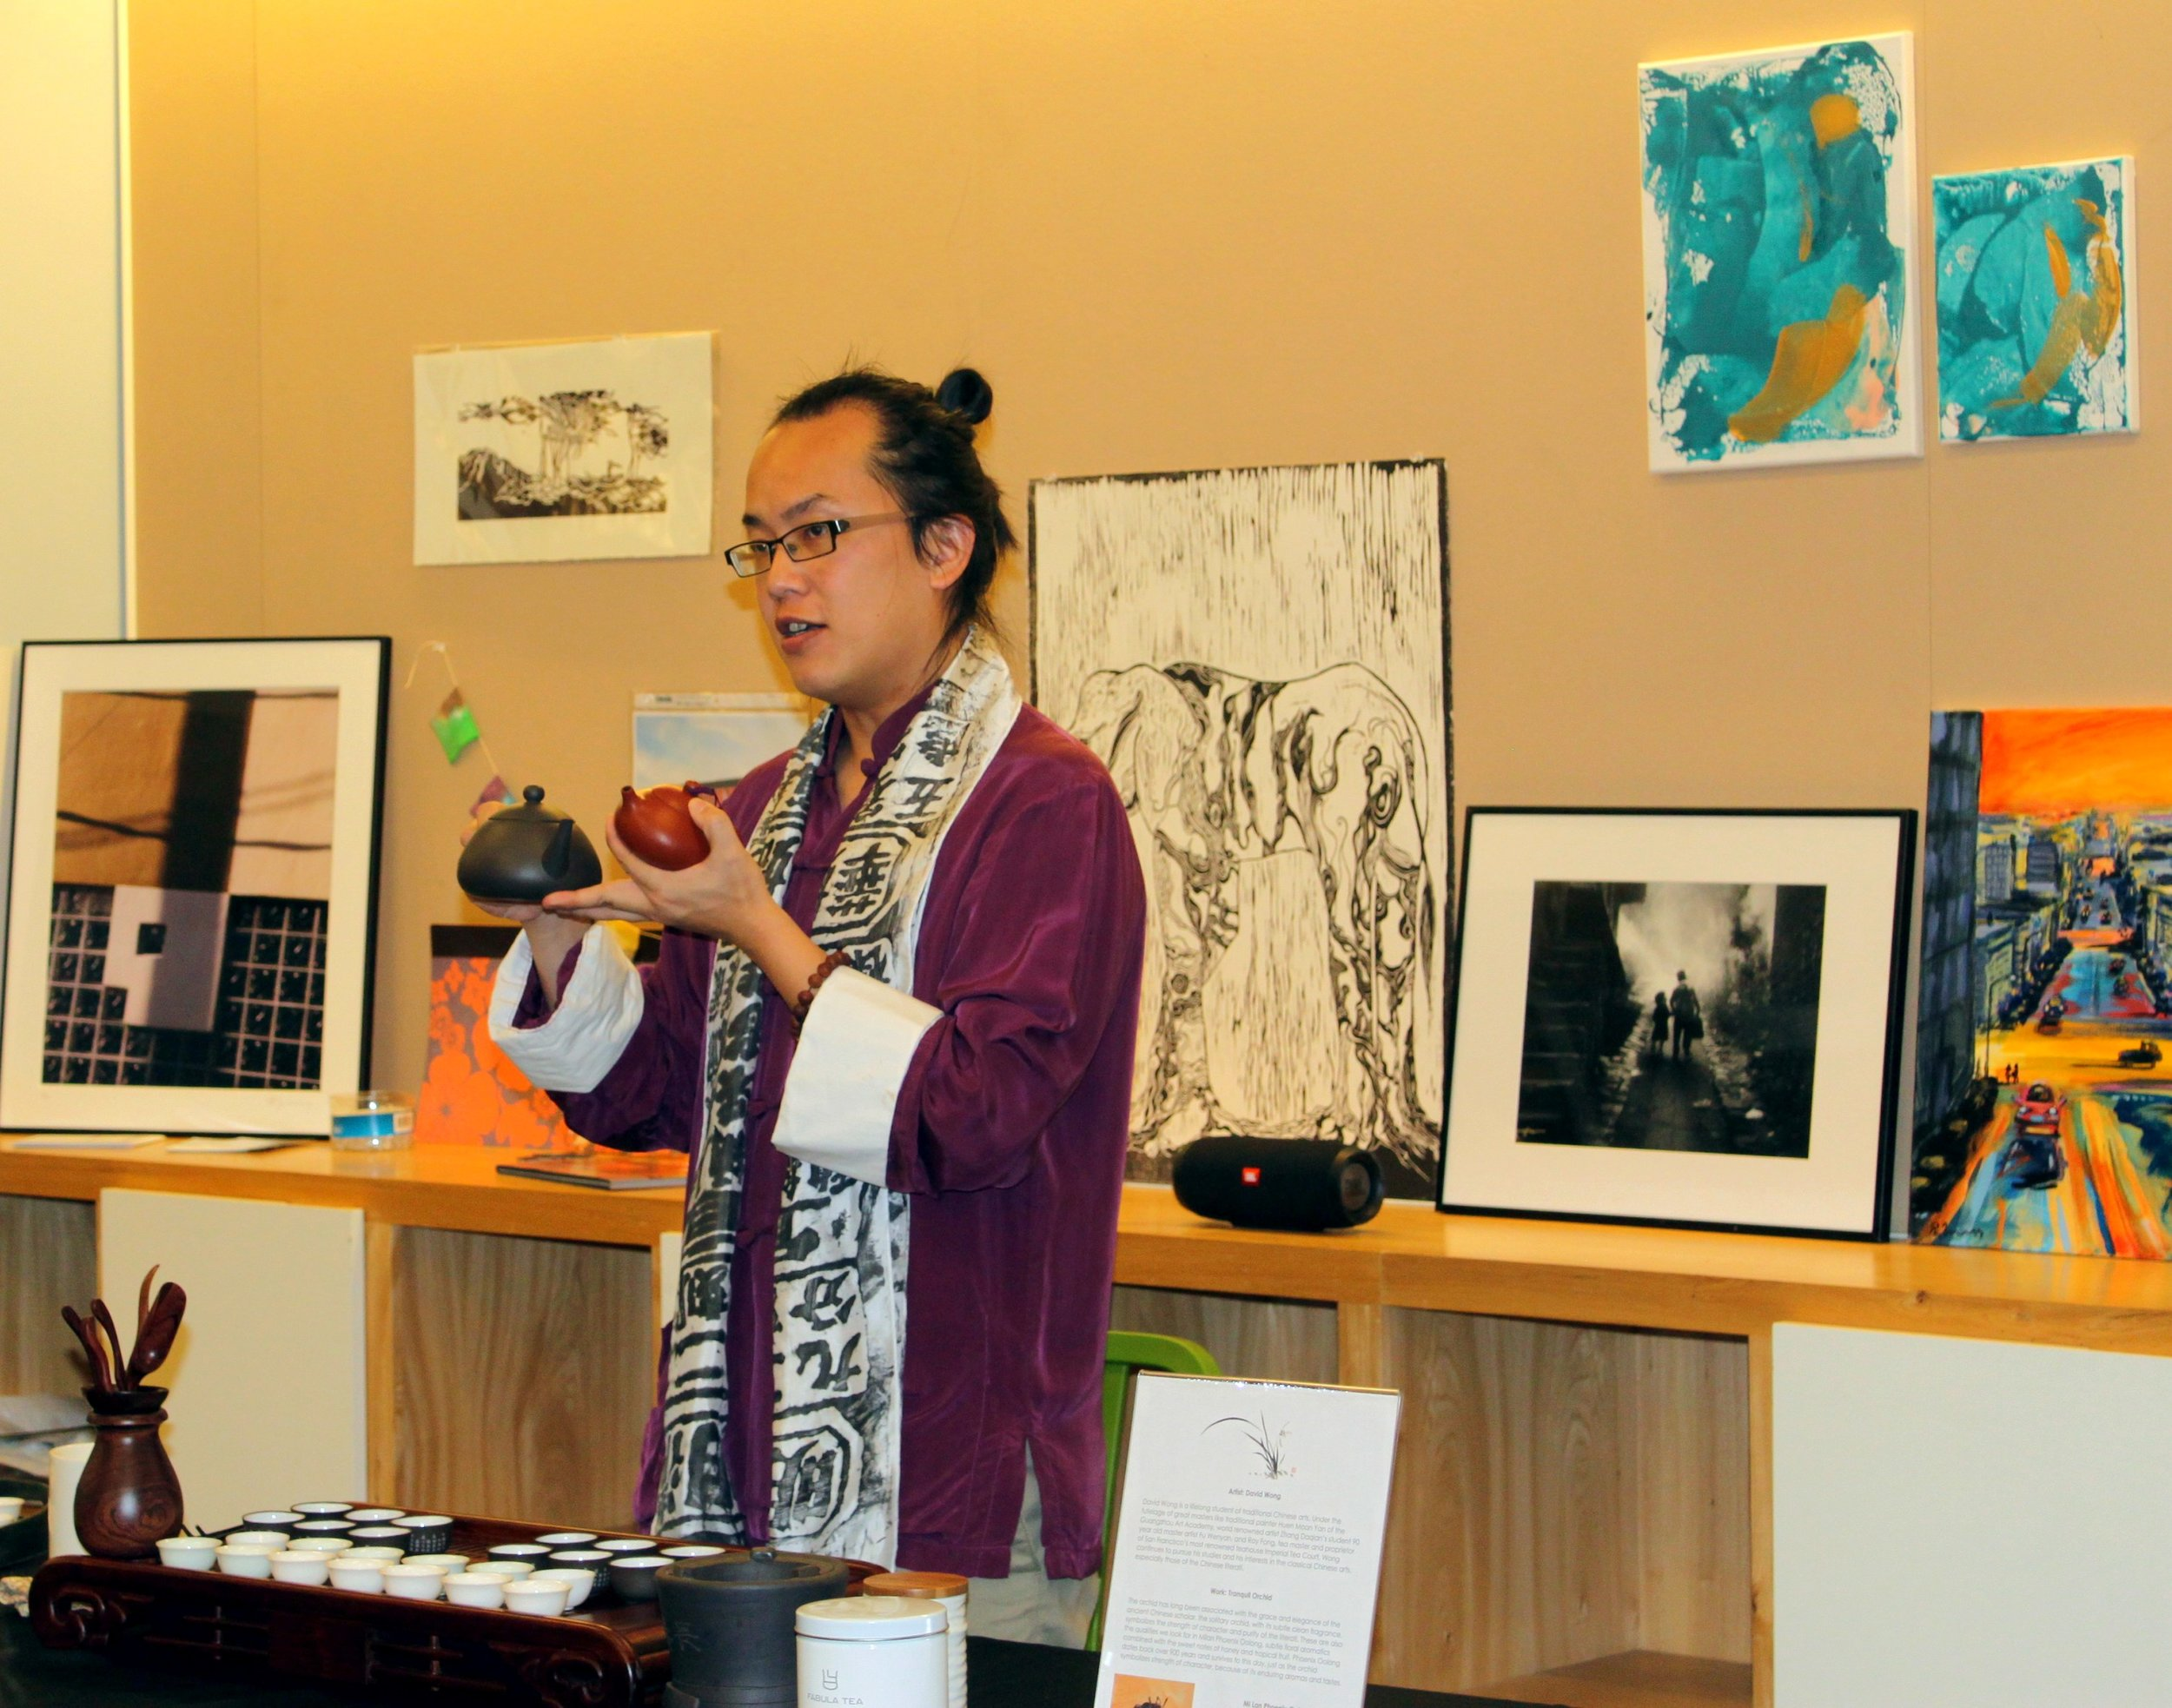 Kids & Art Volunteer Appreciation Tea Ceremony